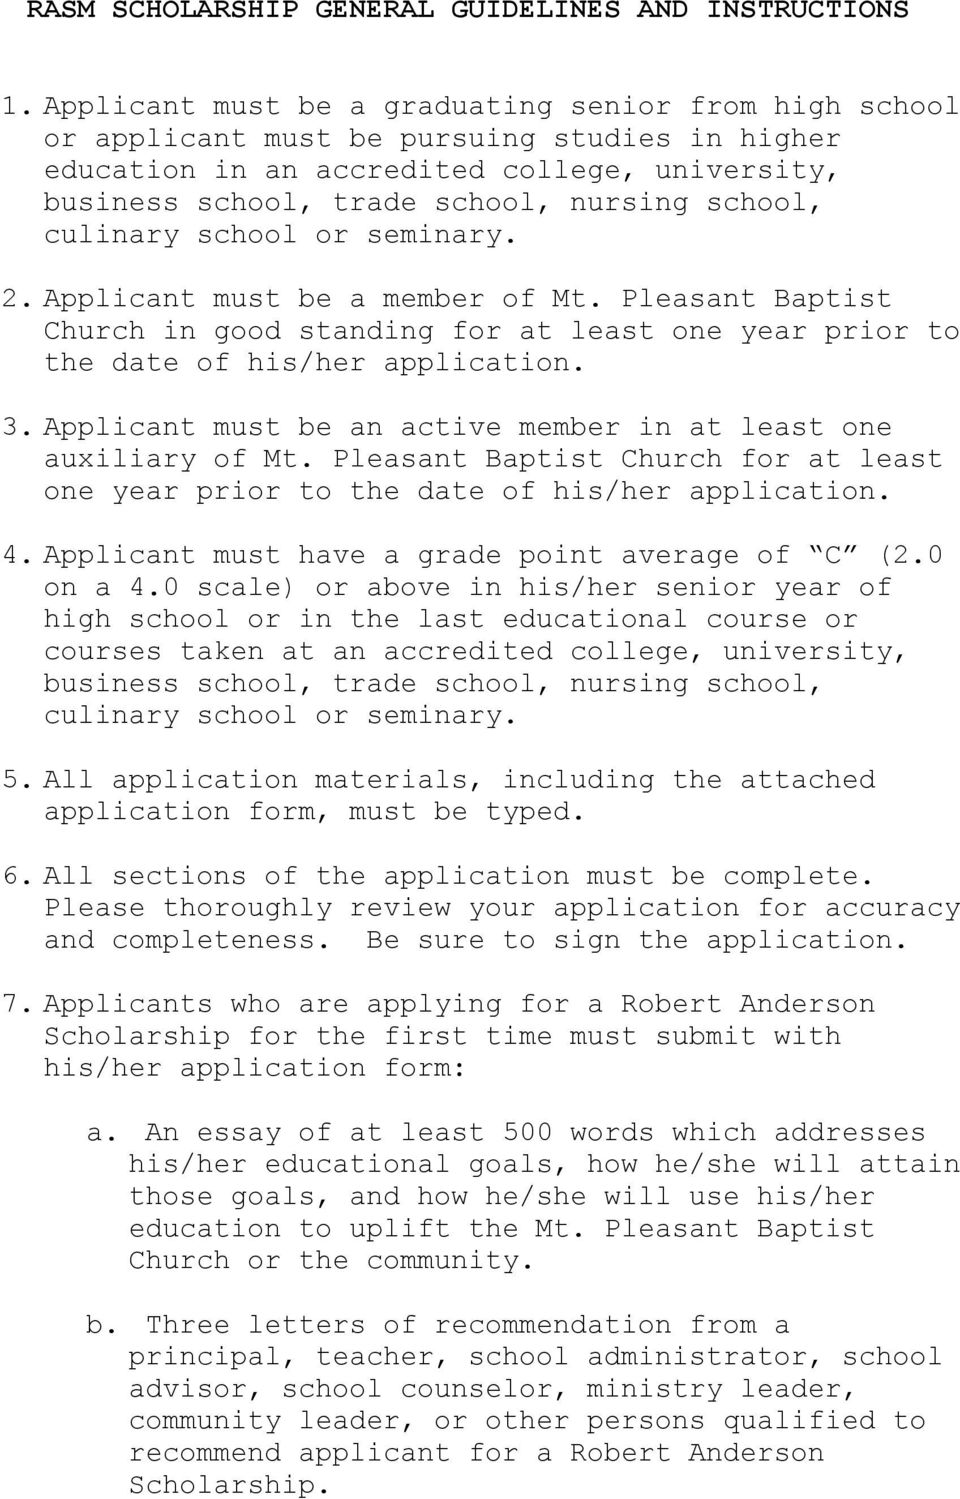 Applicant must be a member of Mt. Pleasant Baptist Church in good standing for at least one year prior to the date of his/her application. 3.